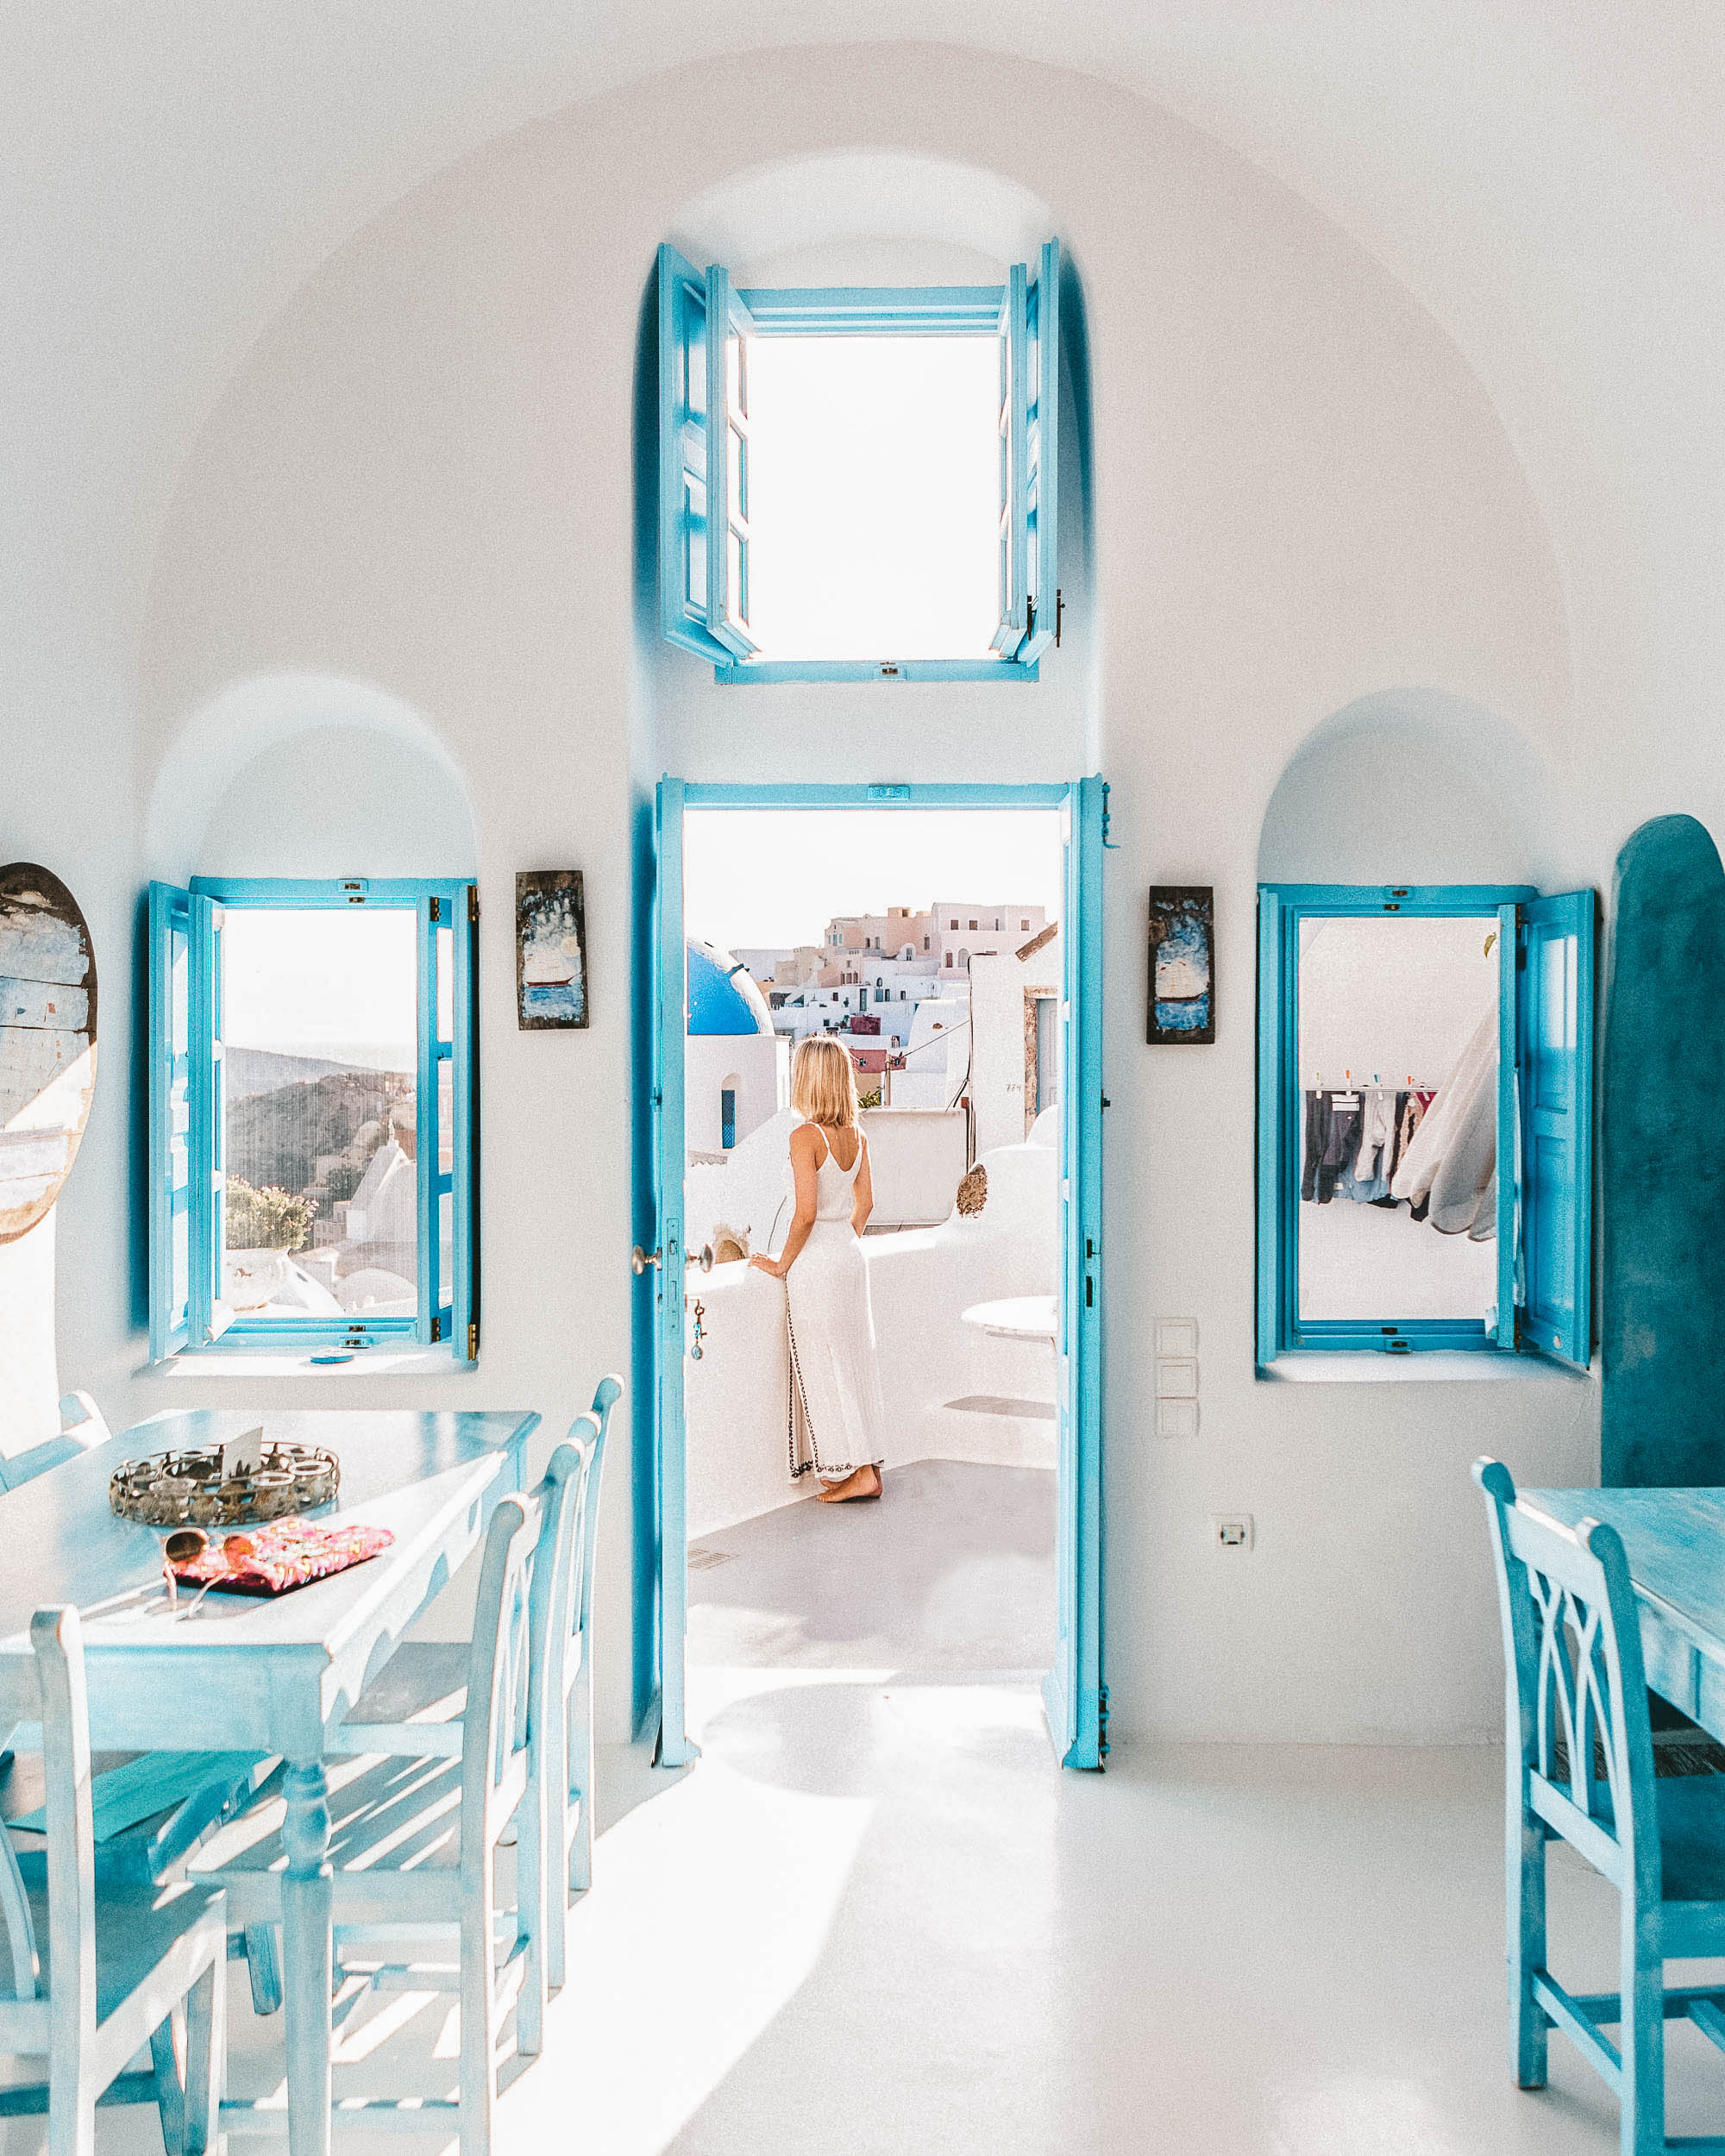 One of the best greek islands to visit - Santorini via @finduslost